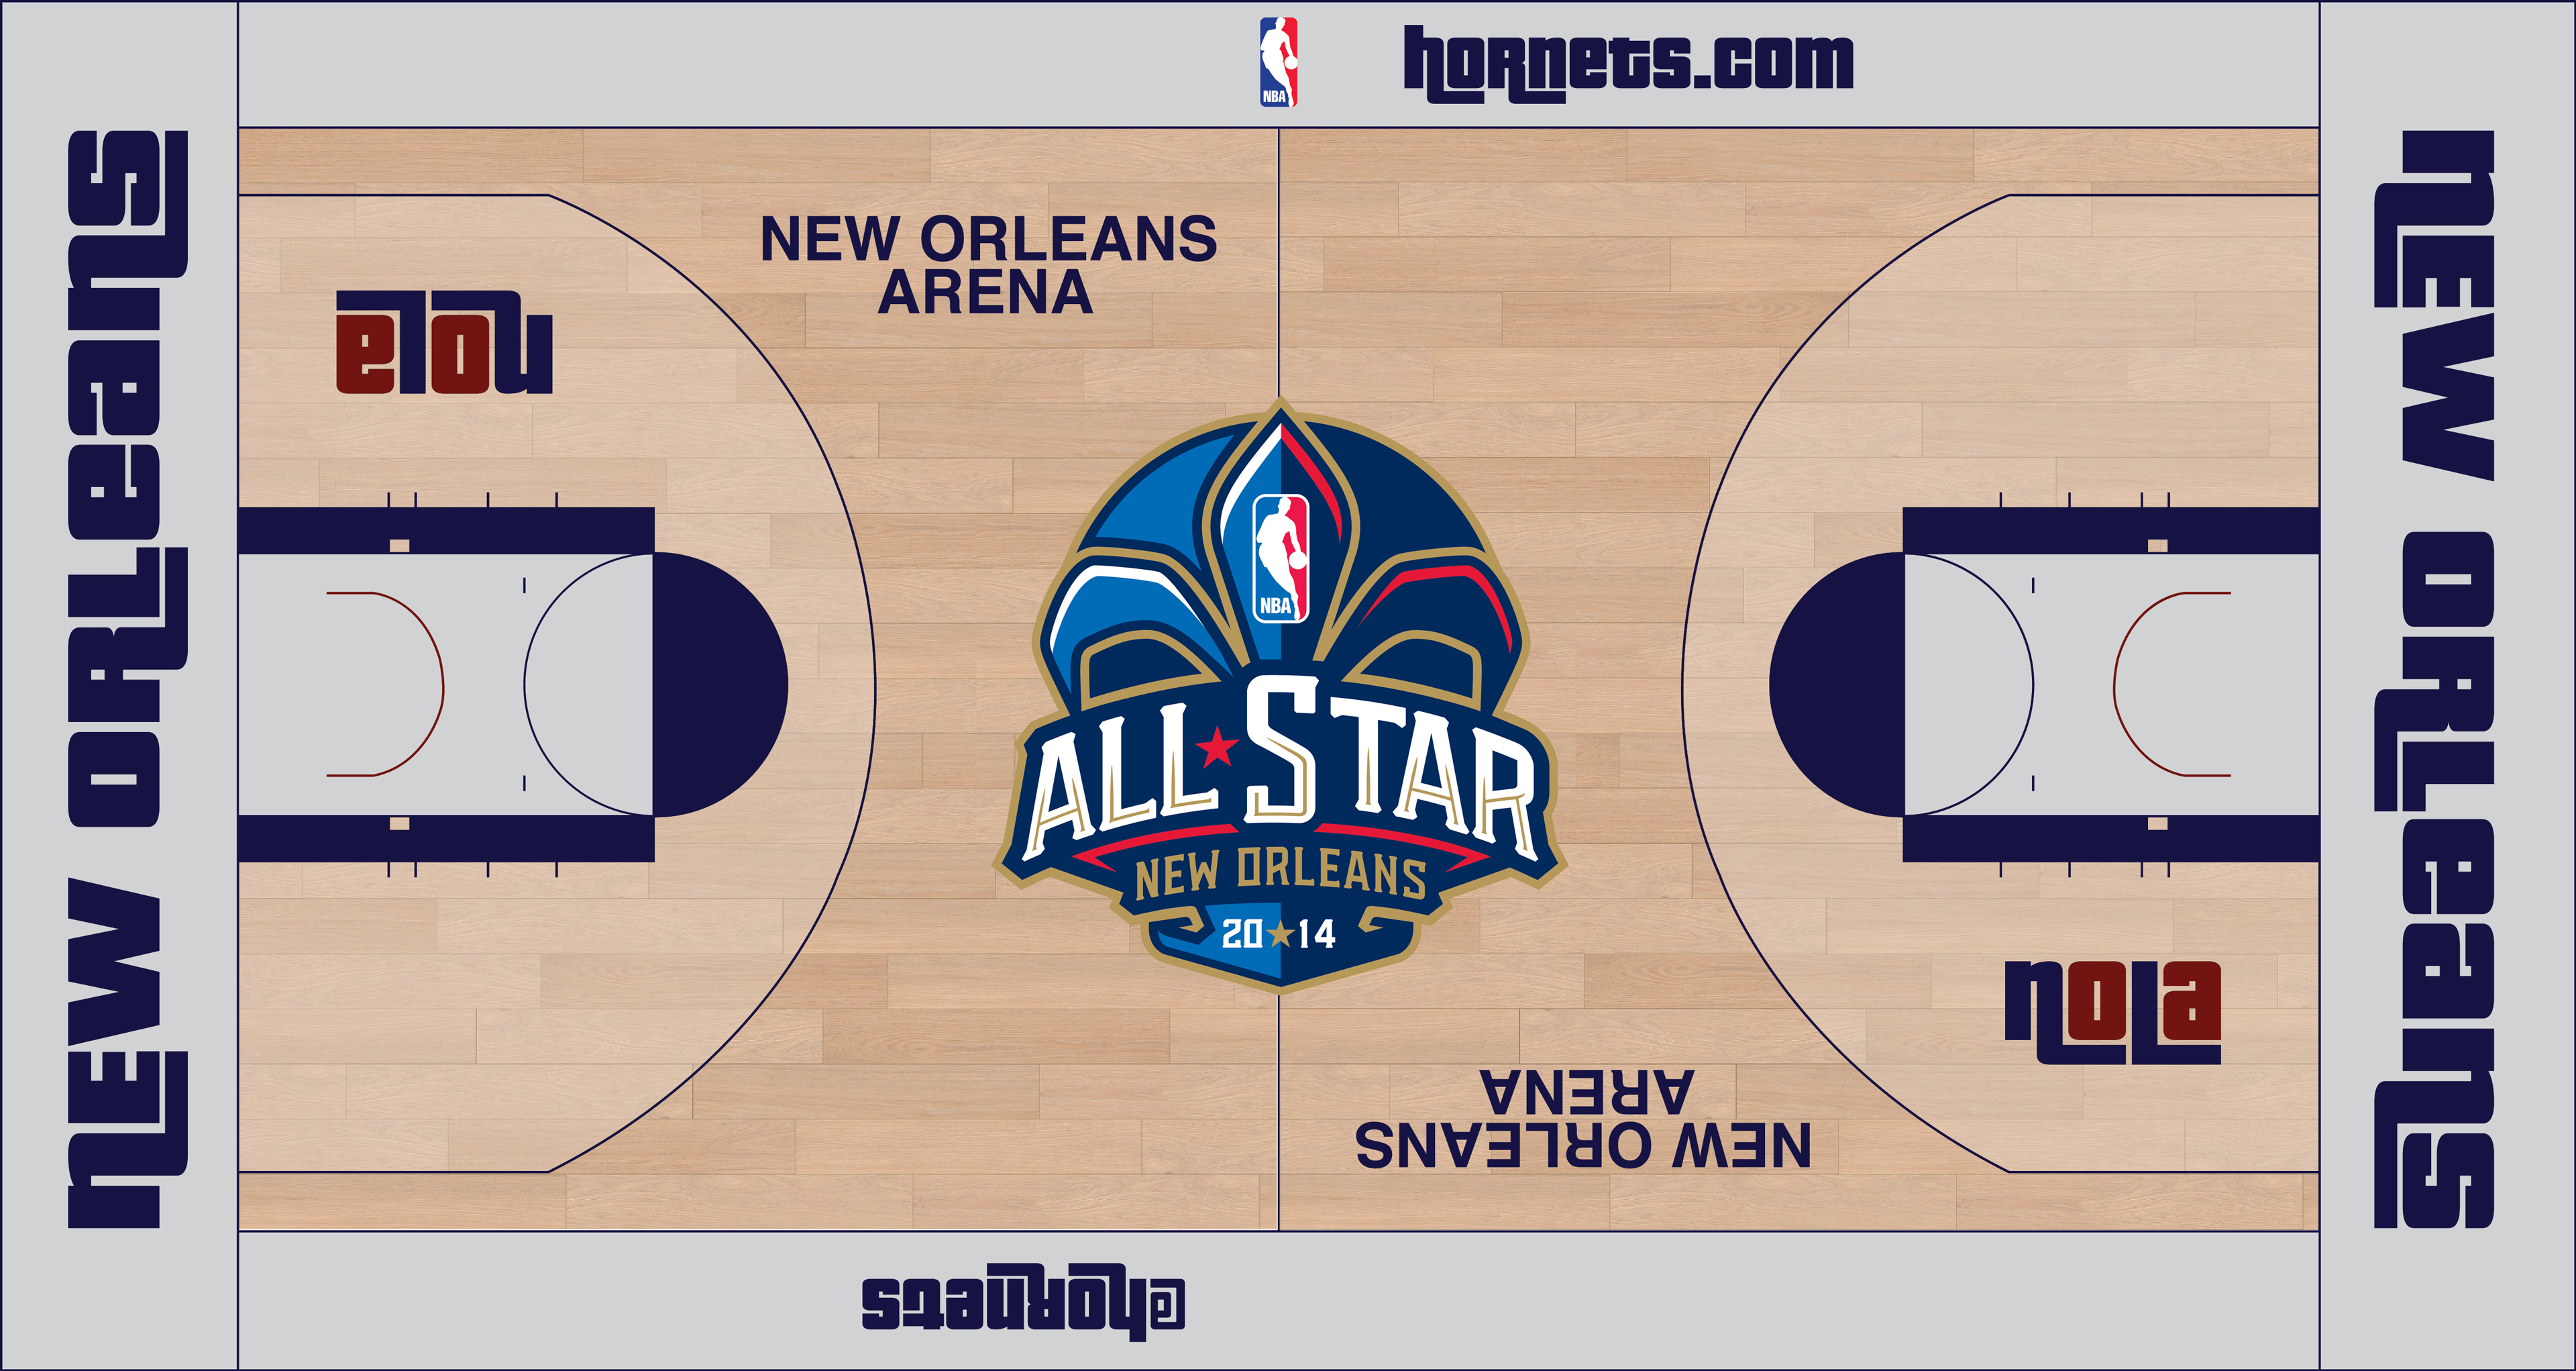 nba all star game 2014 packages